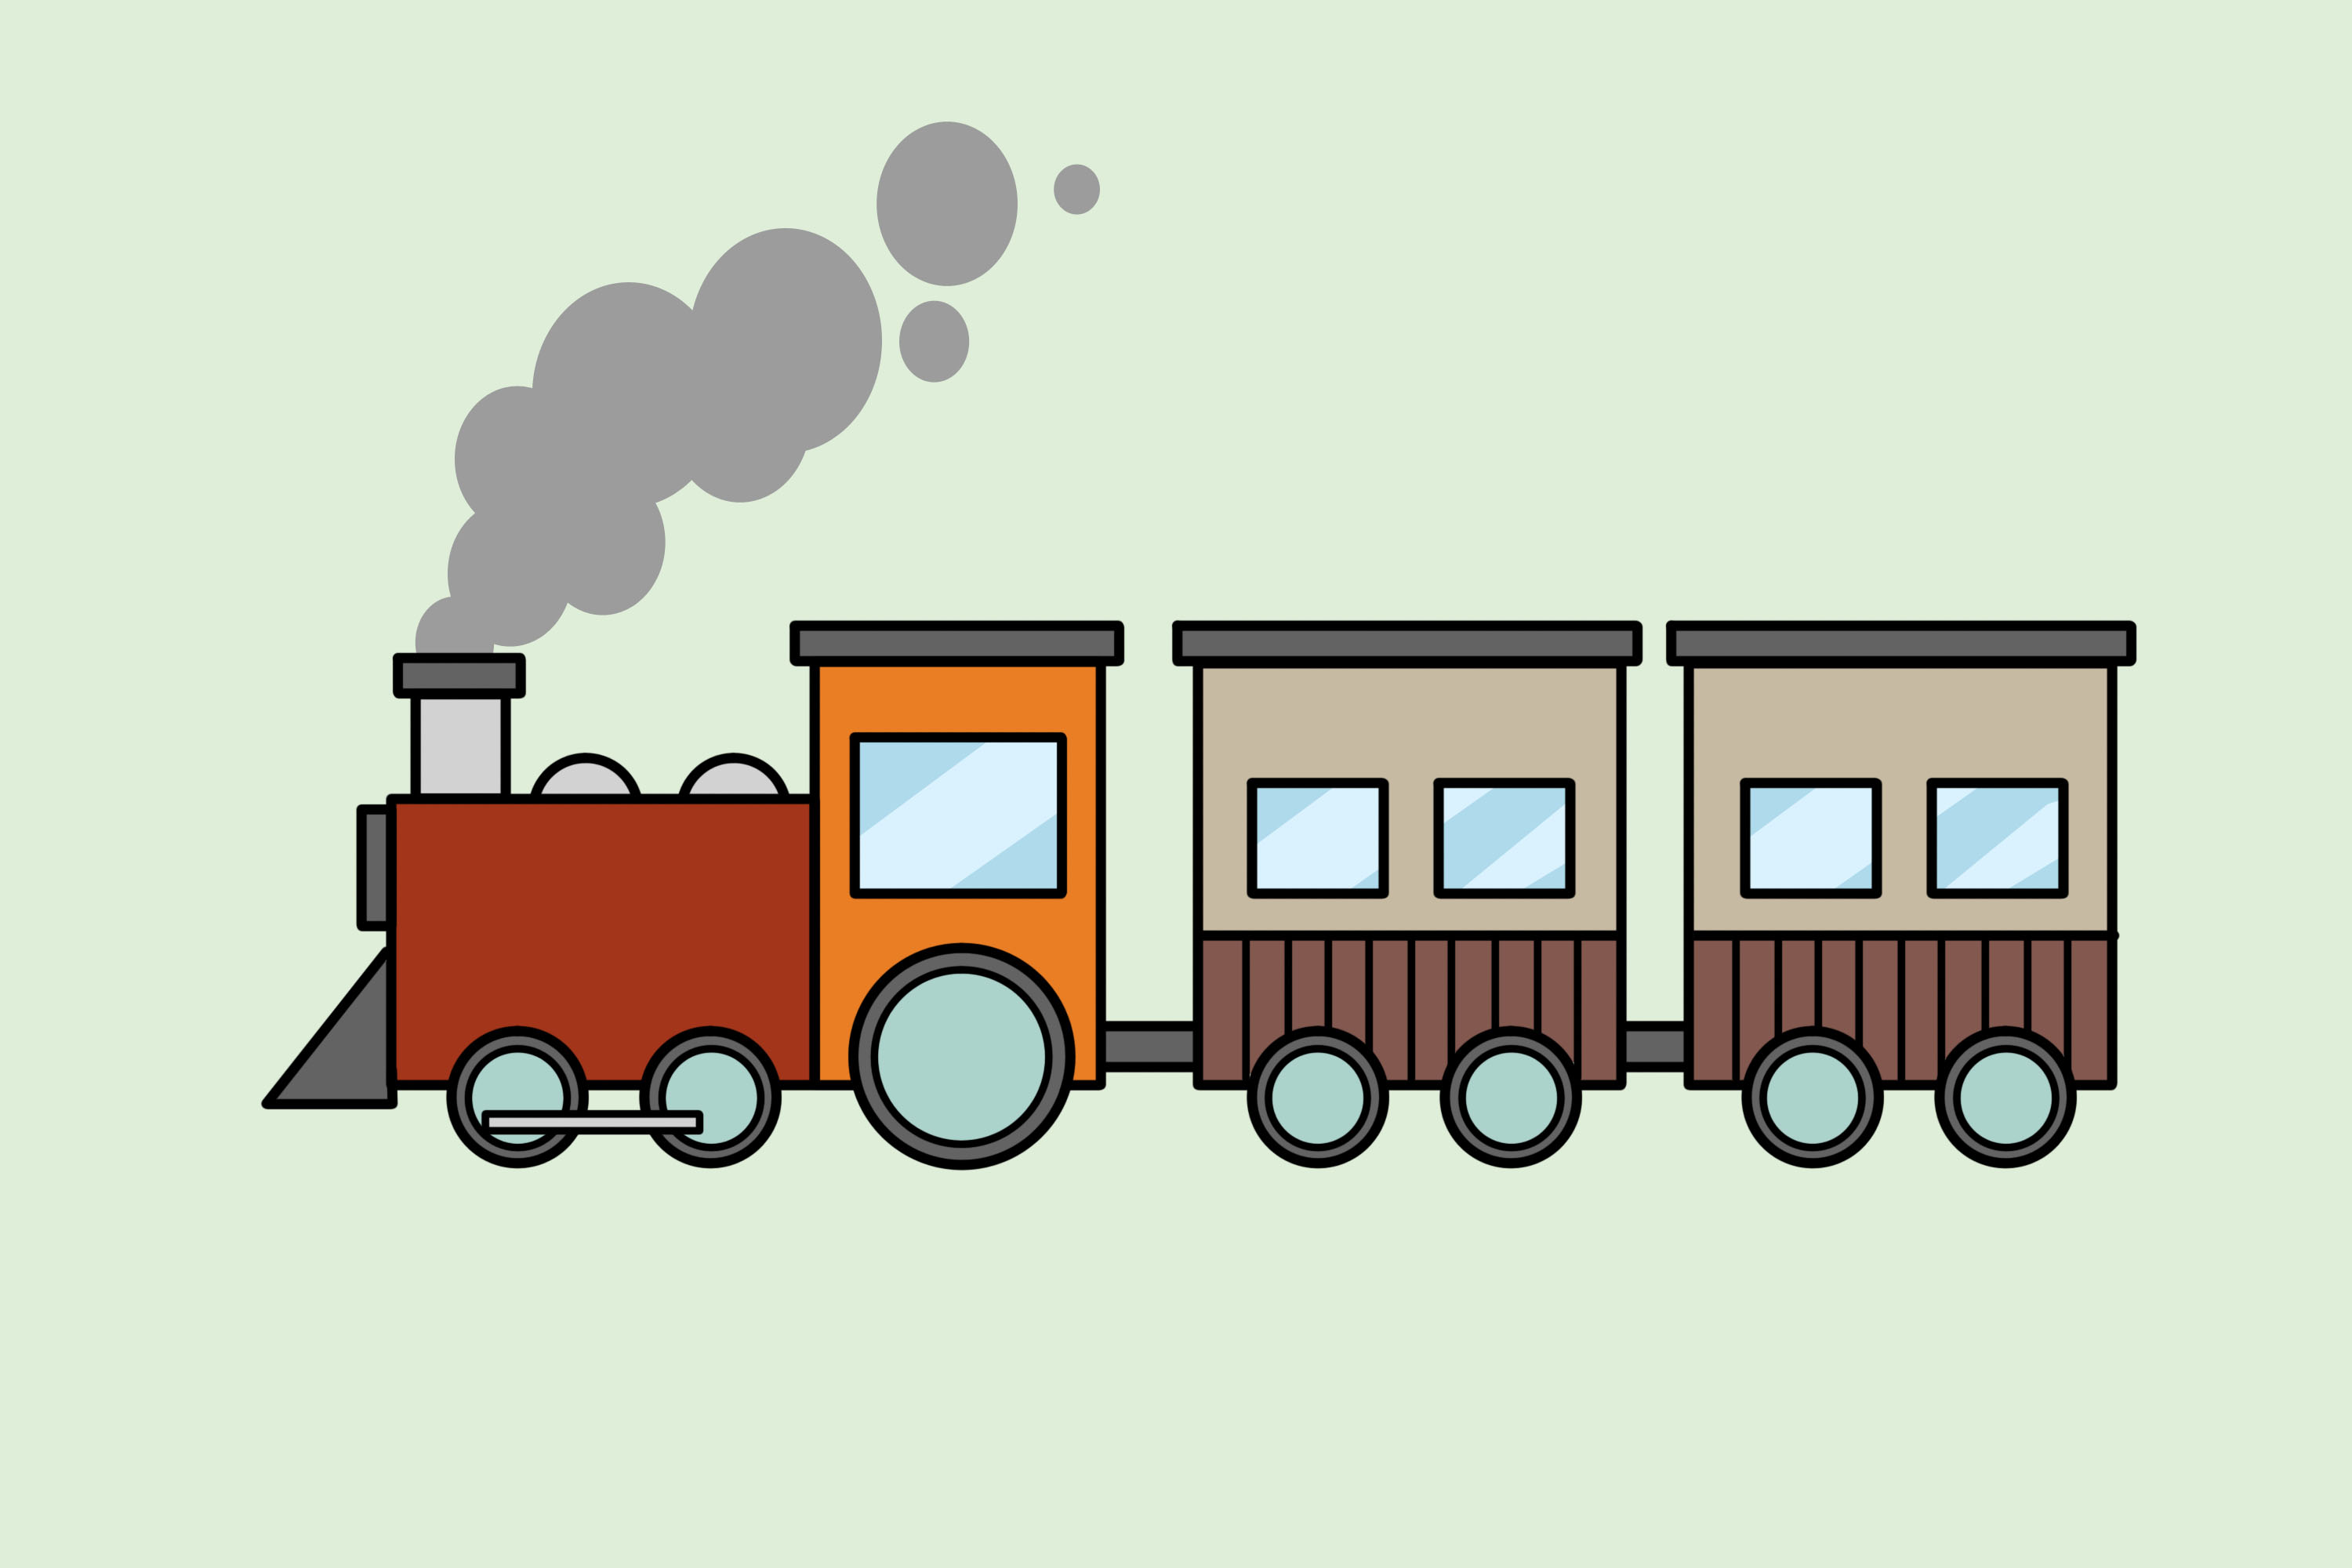 Subway clipart simple train. Ways to draw